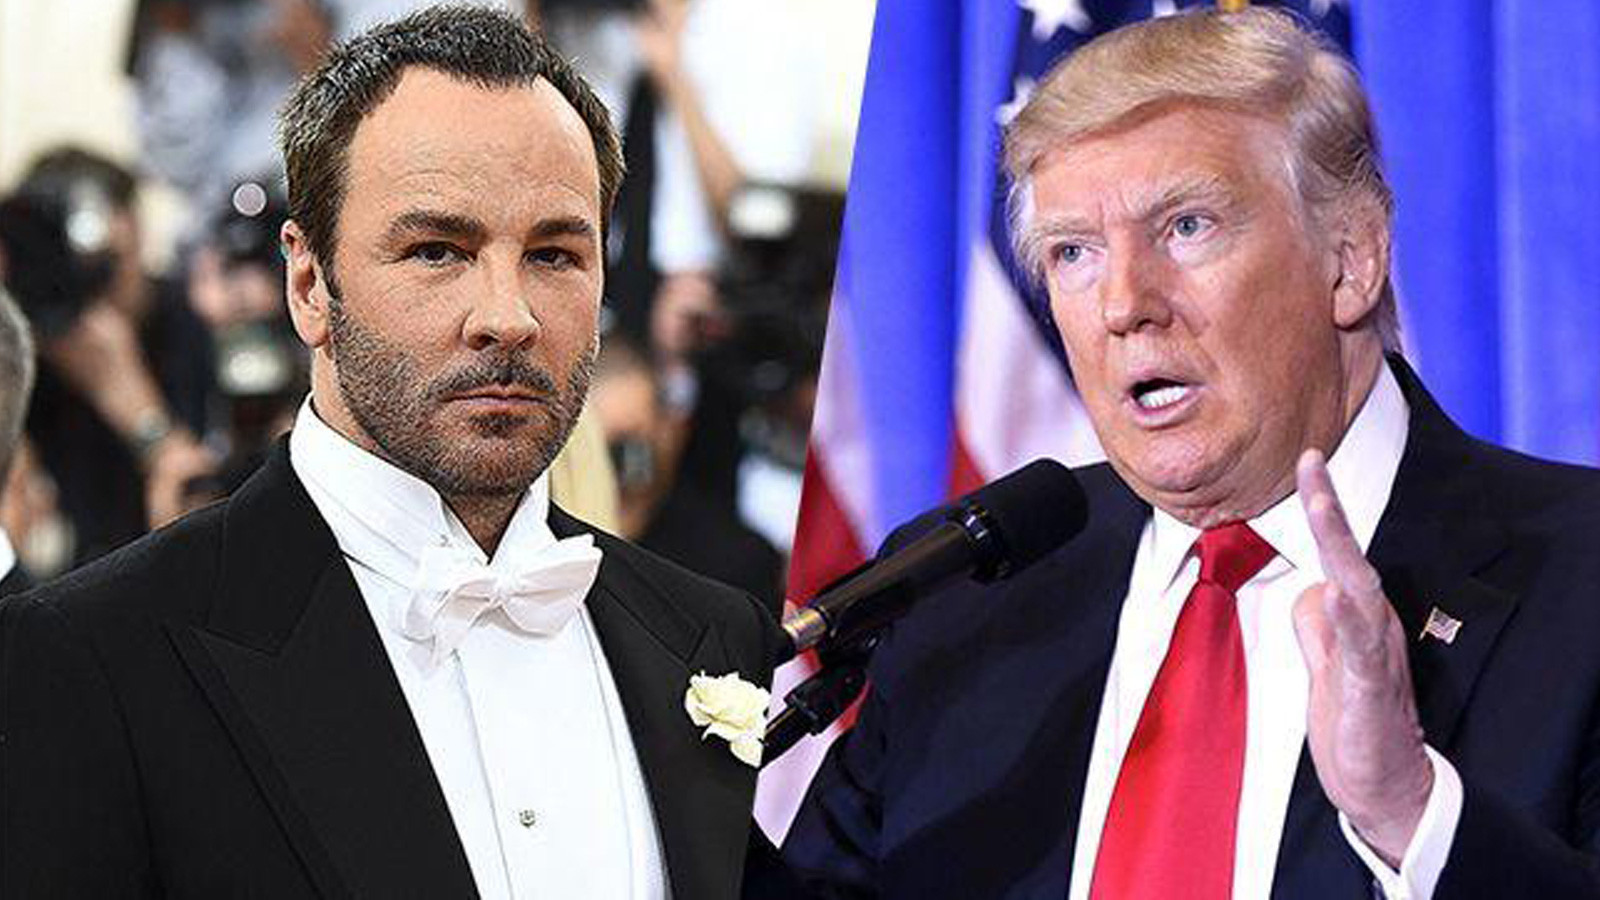 Donald Trump blasts Tom Ford for comments about soon-to-be First Lady Melania Trump